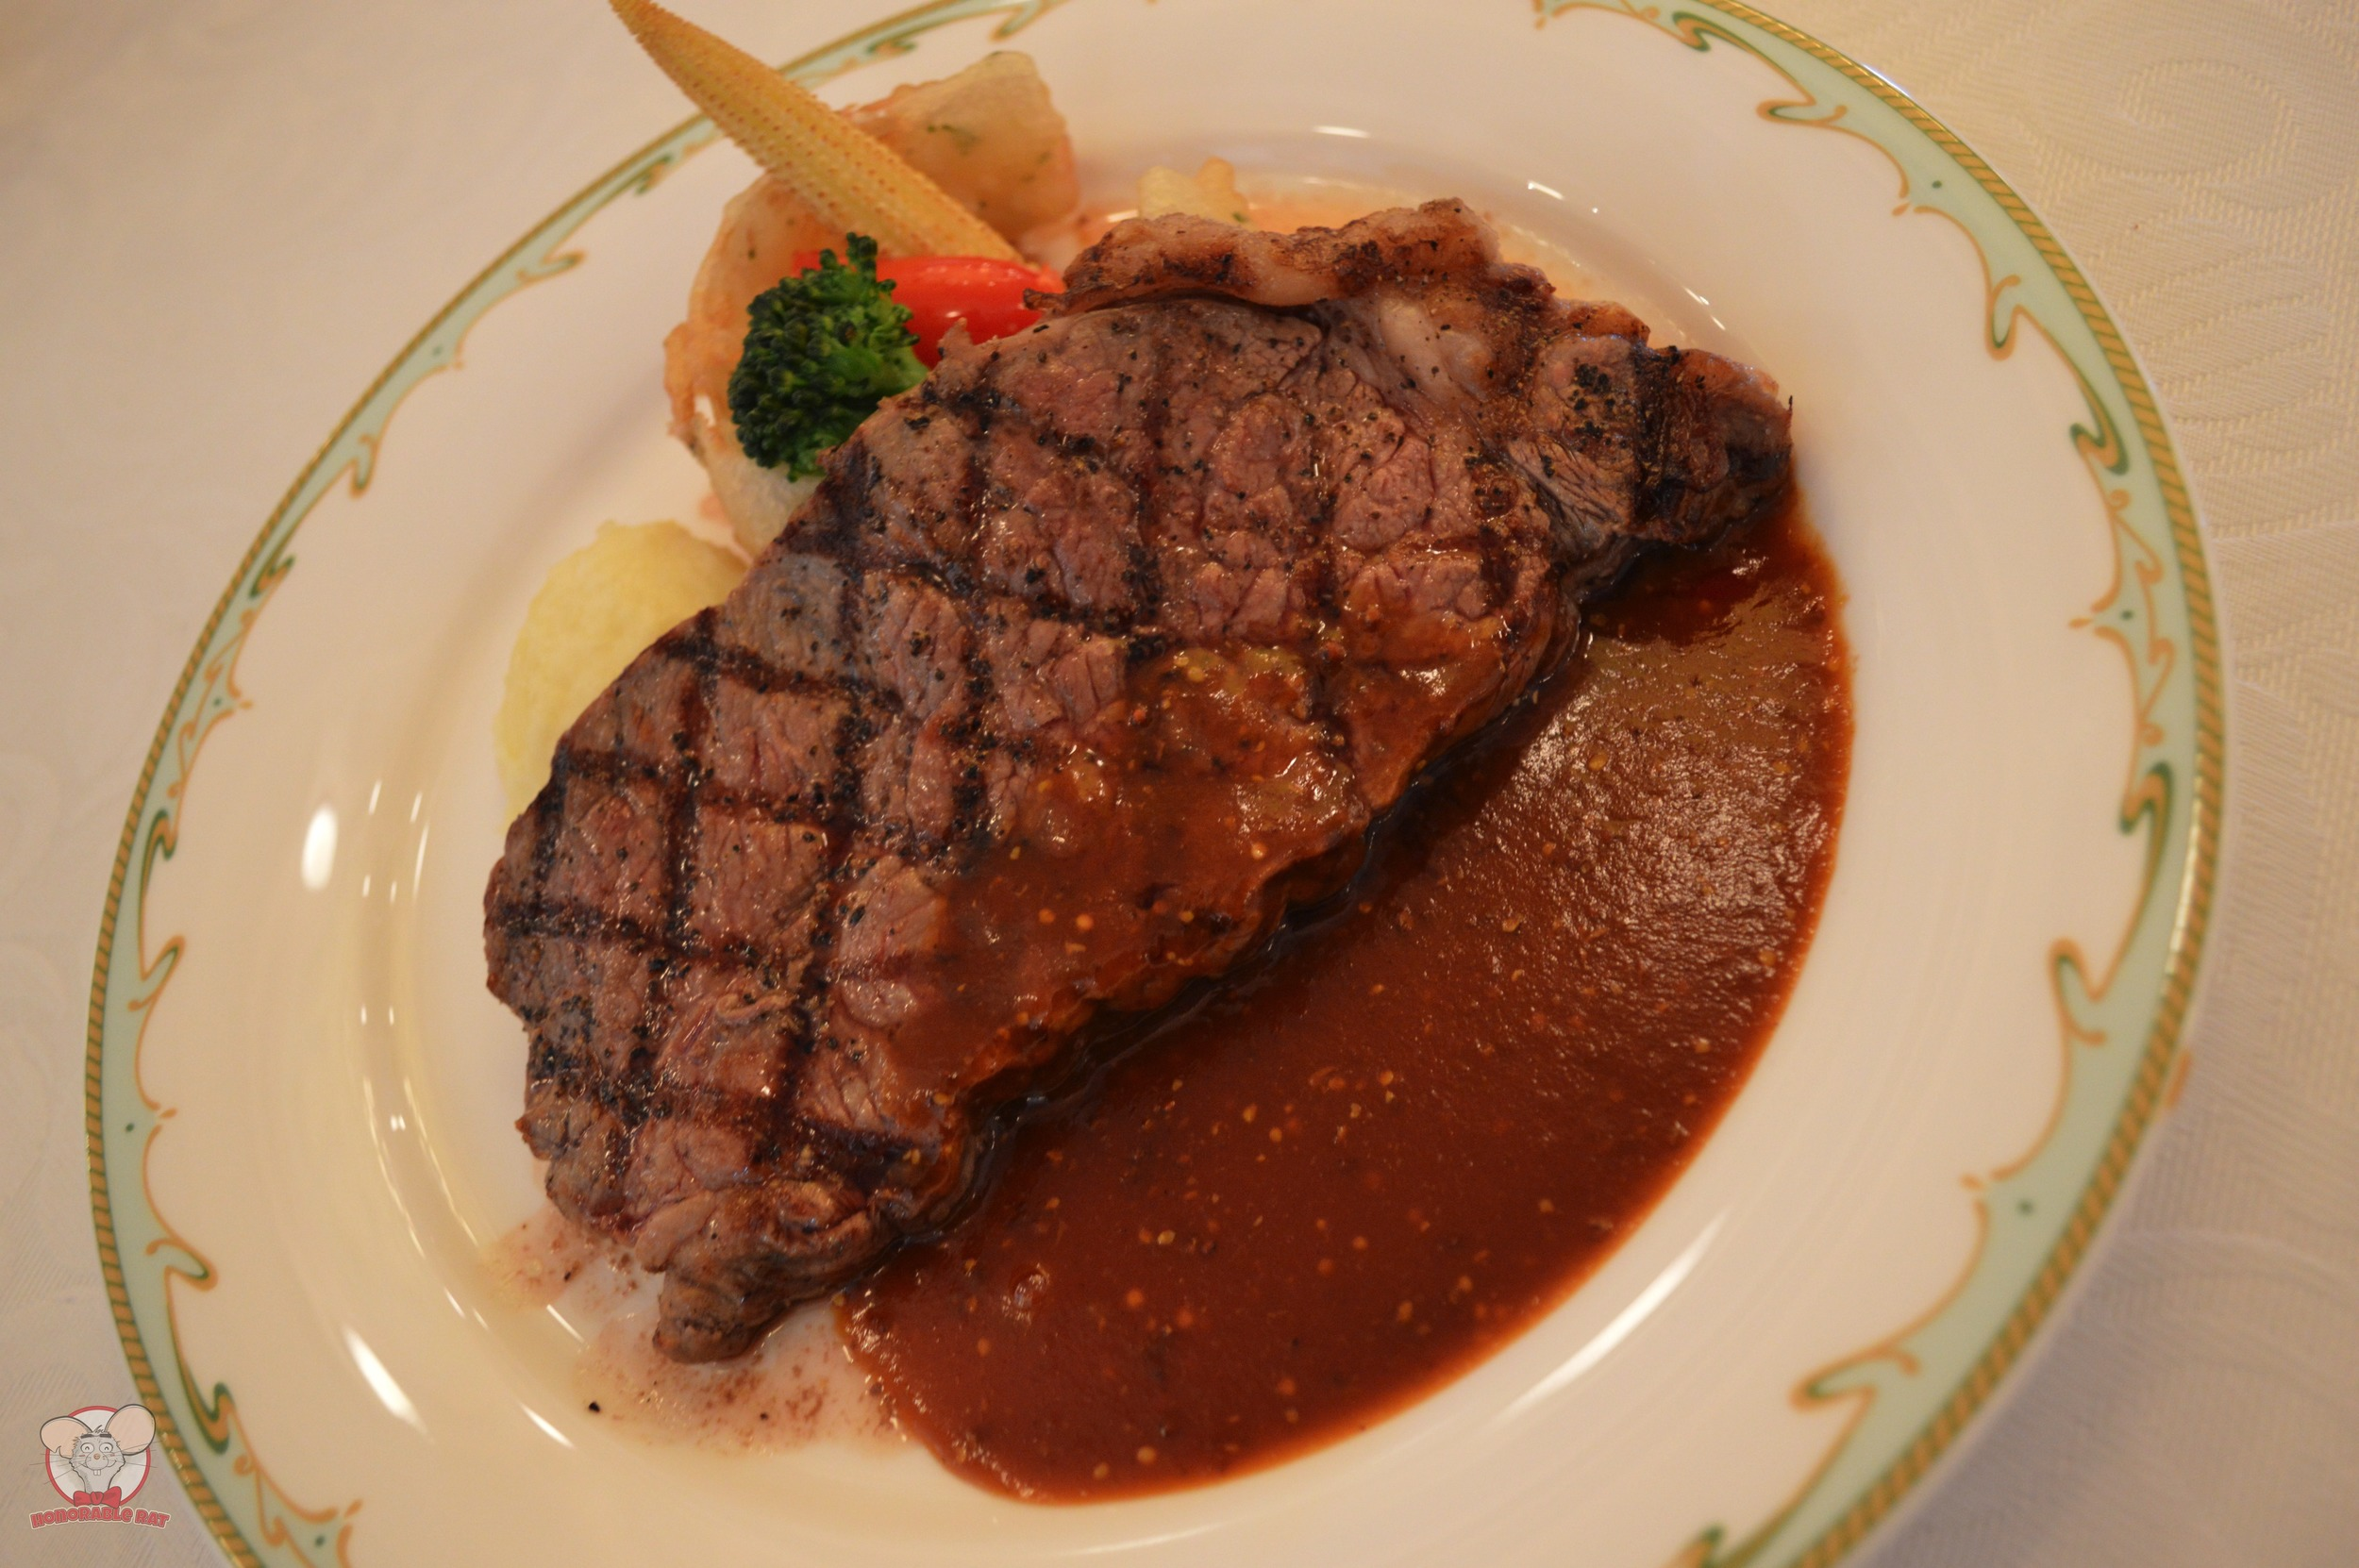 Sirloin Steak with Mashed Potatoes and Seasonal Vegetables